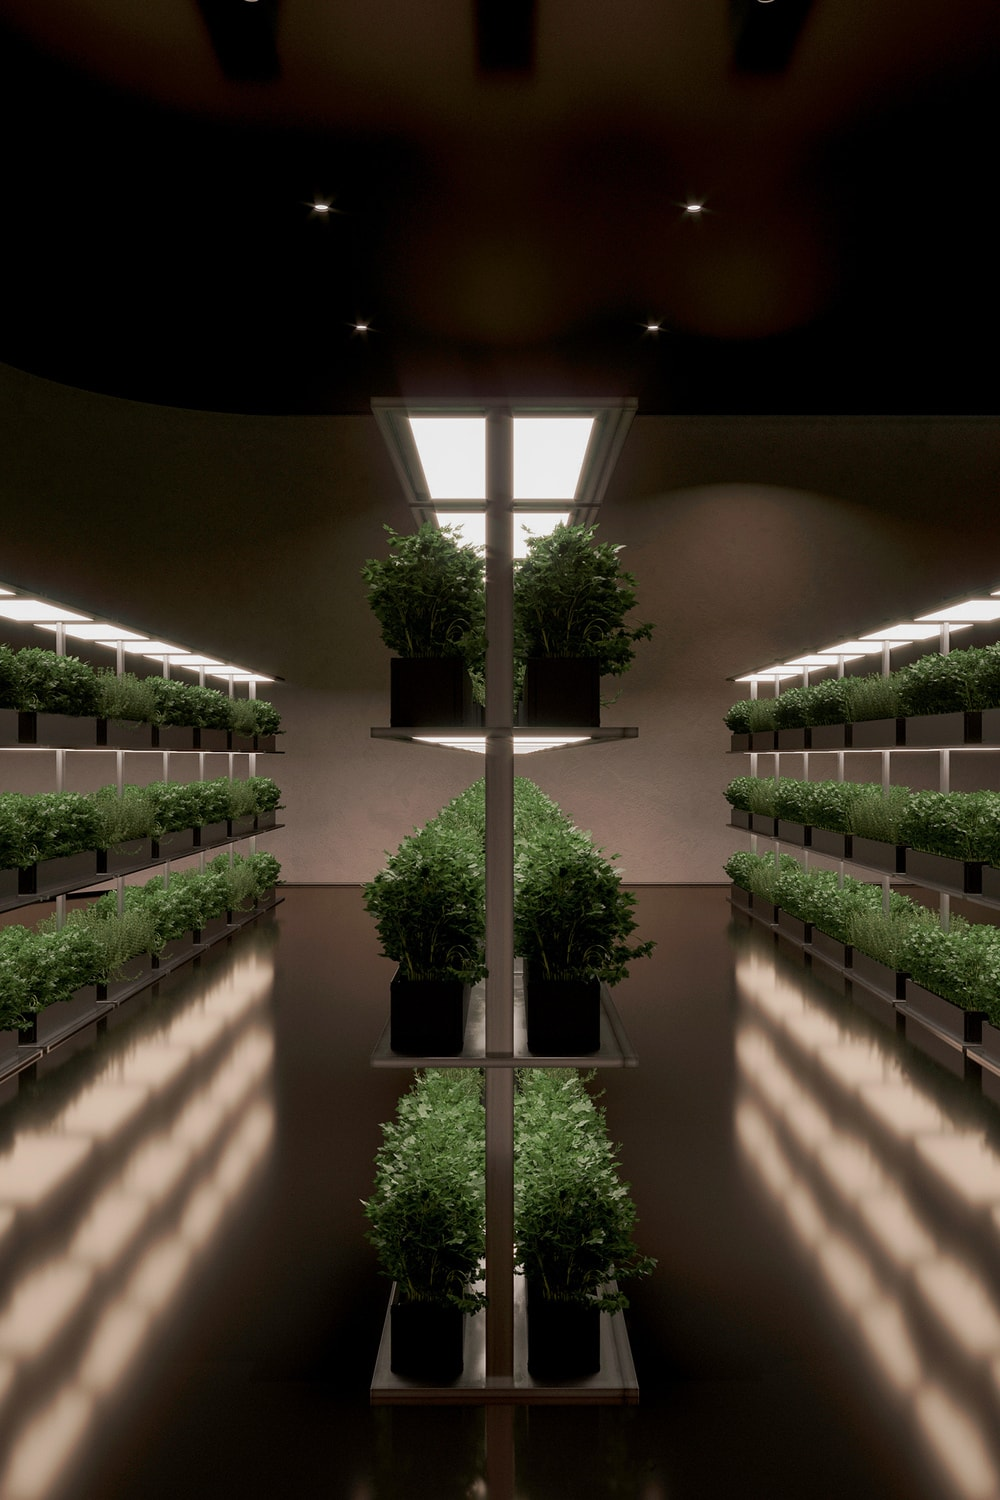 This is the underground greenhouse of the house with rows of potted vegetables and herbs.